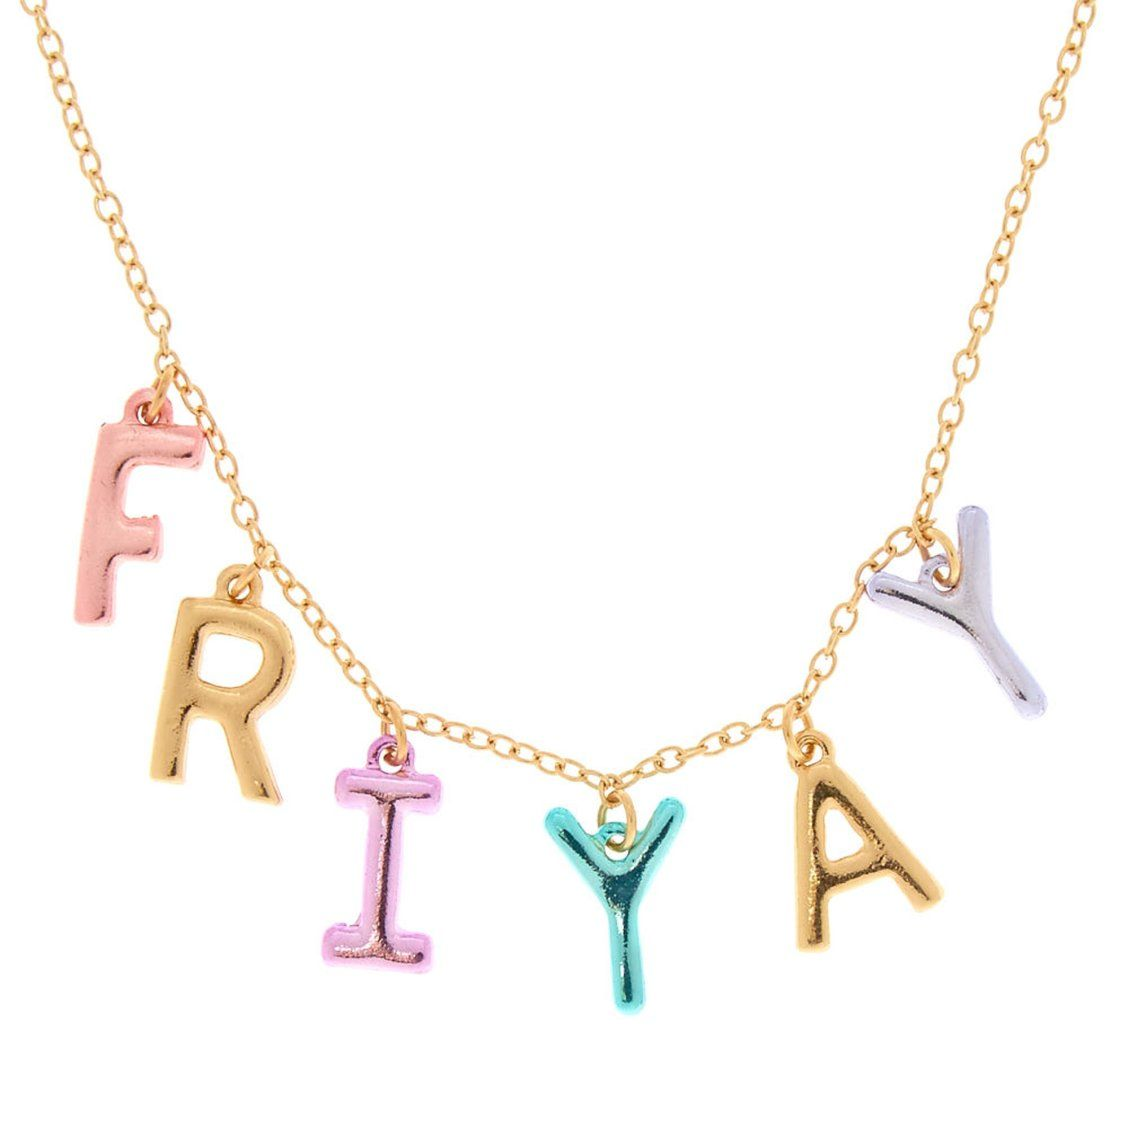 Fri Yay Charm Necklace Cool Necklaces Necklace Charm Necklace